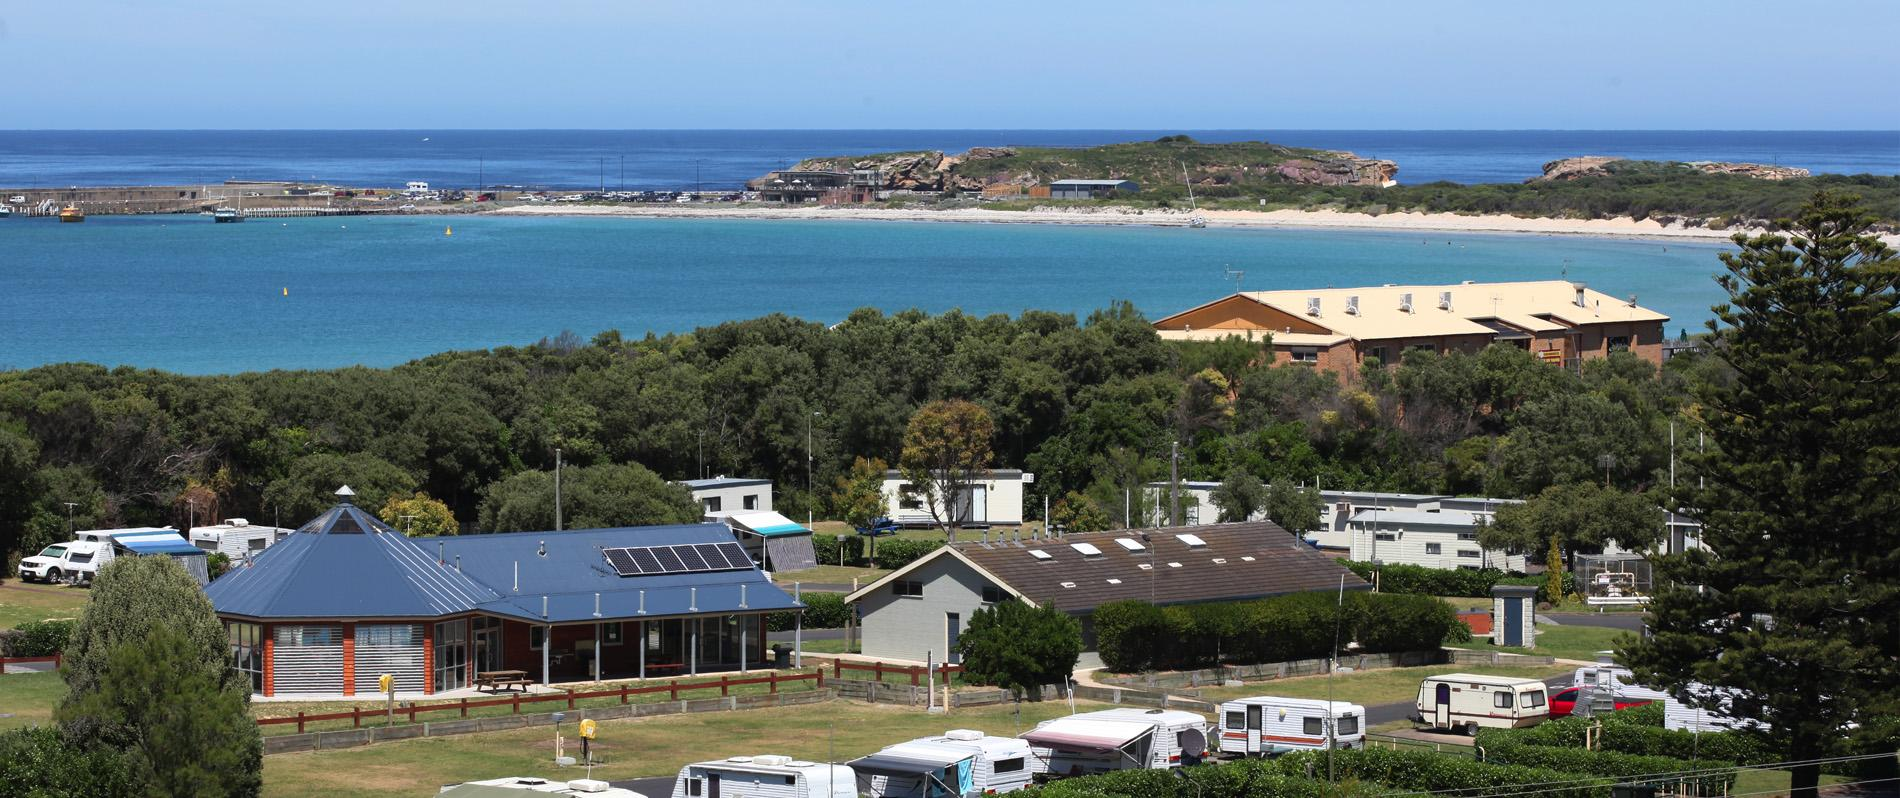 Welcome to Surfside Holiday Parks Warrnambool | surfside